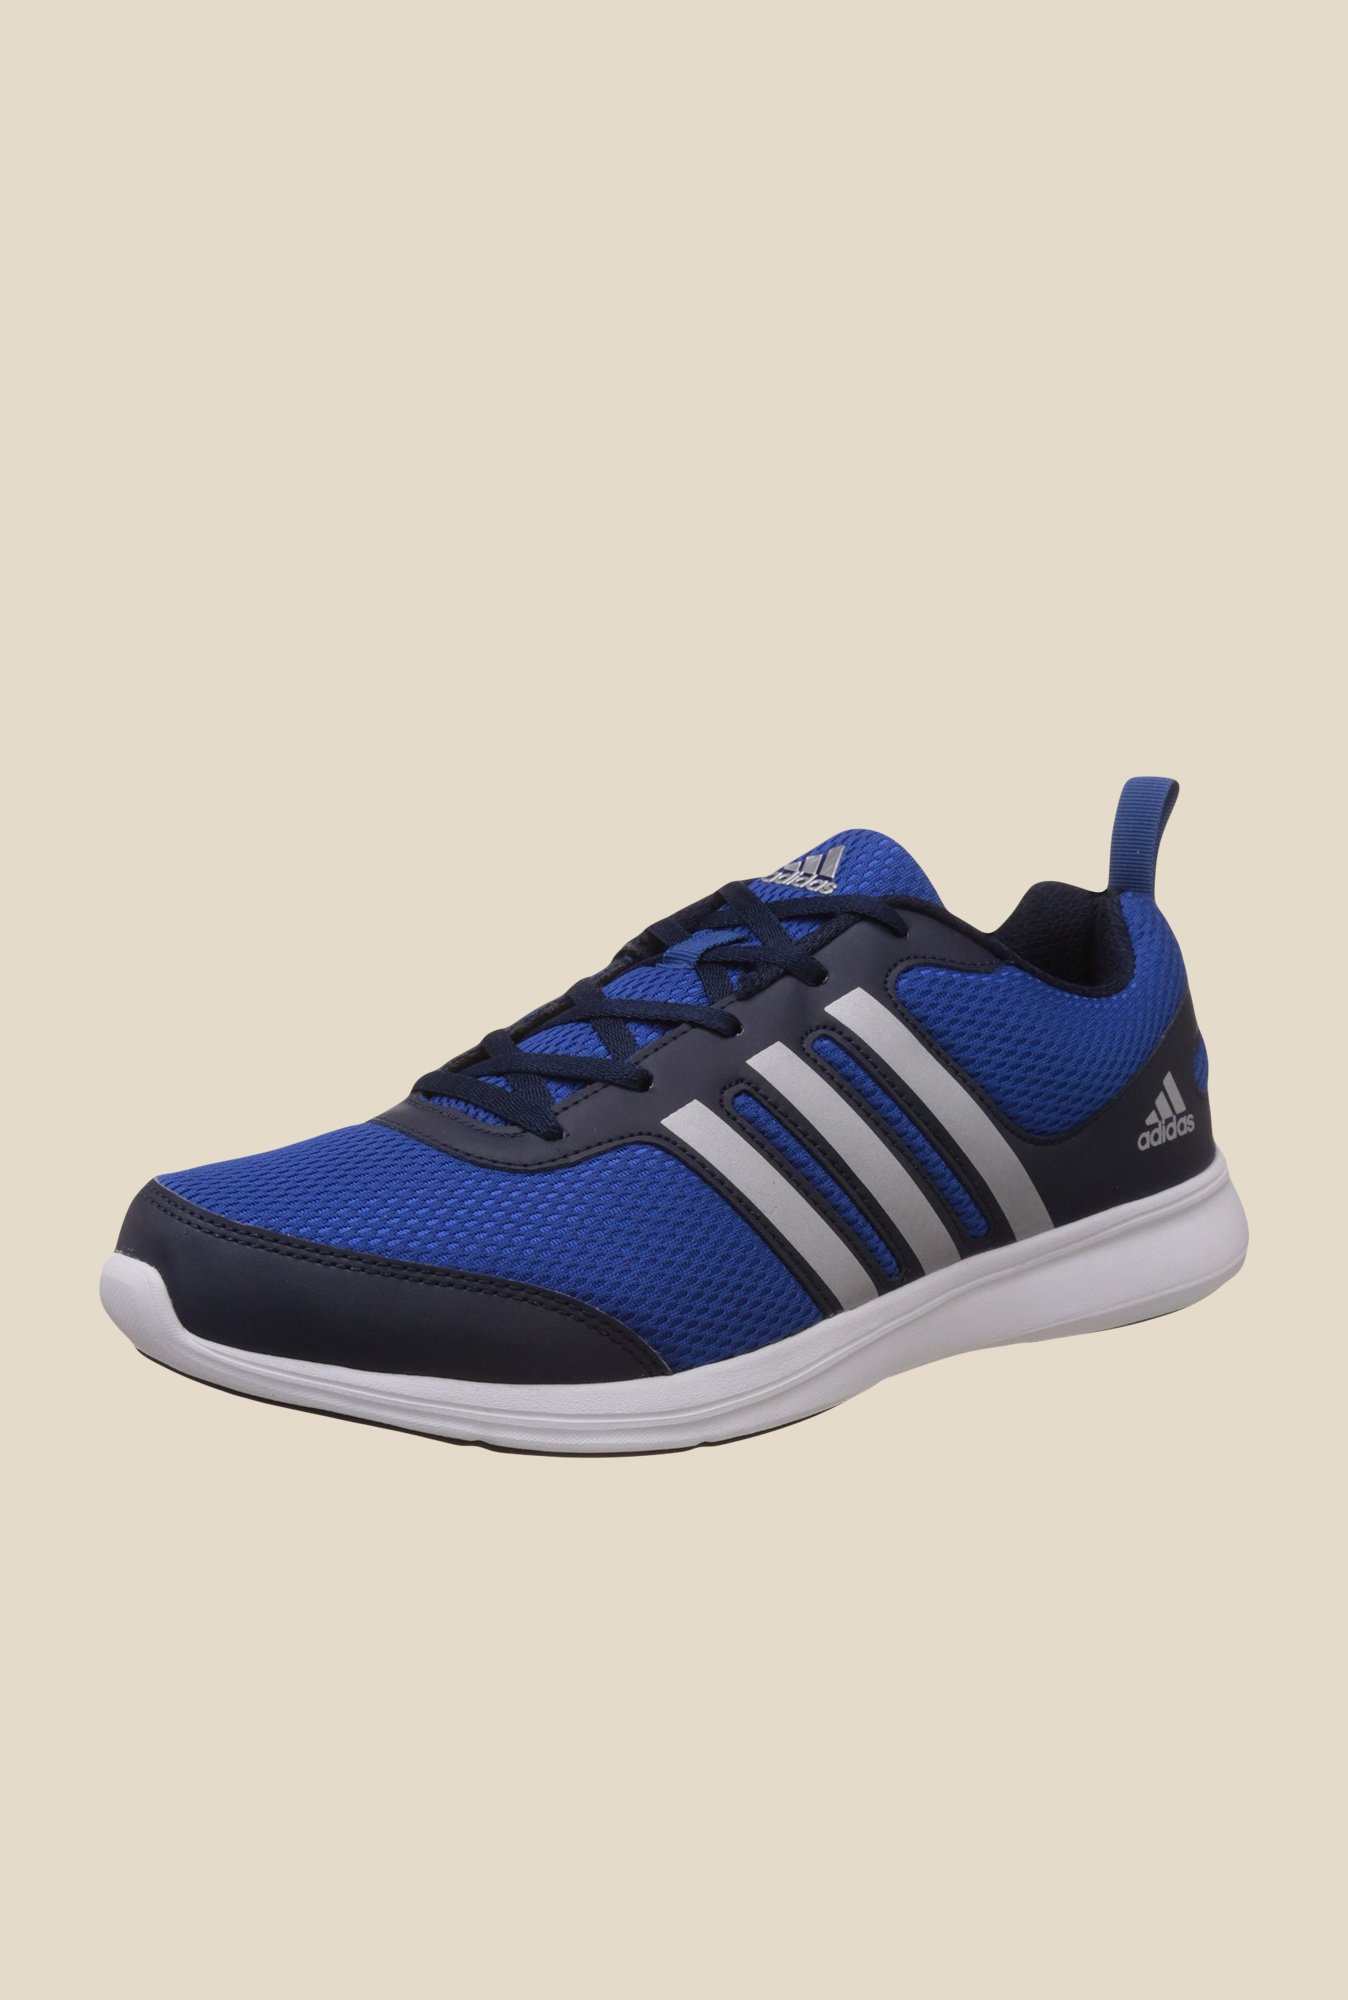 Adidas Y King Navy & Blue Running Shoes